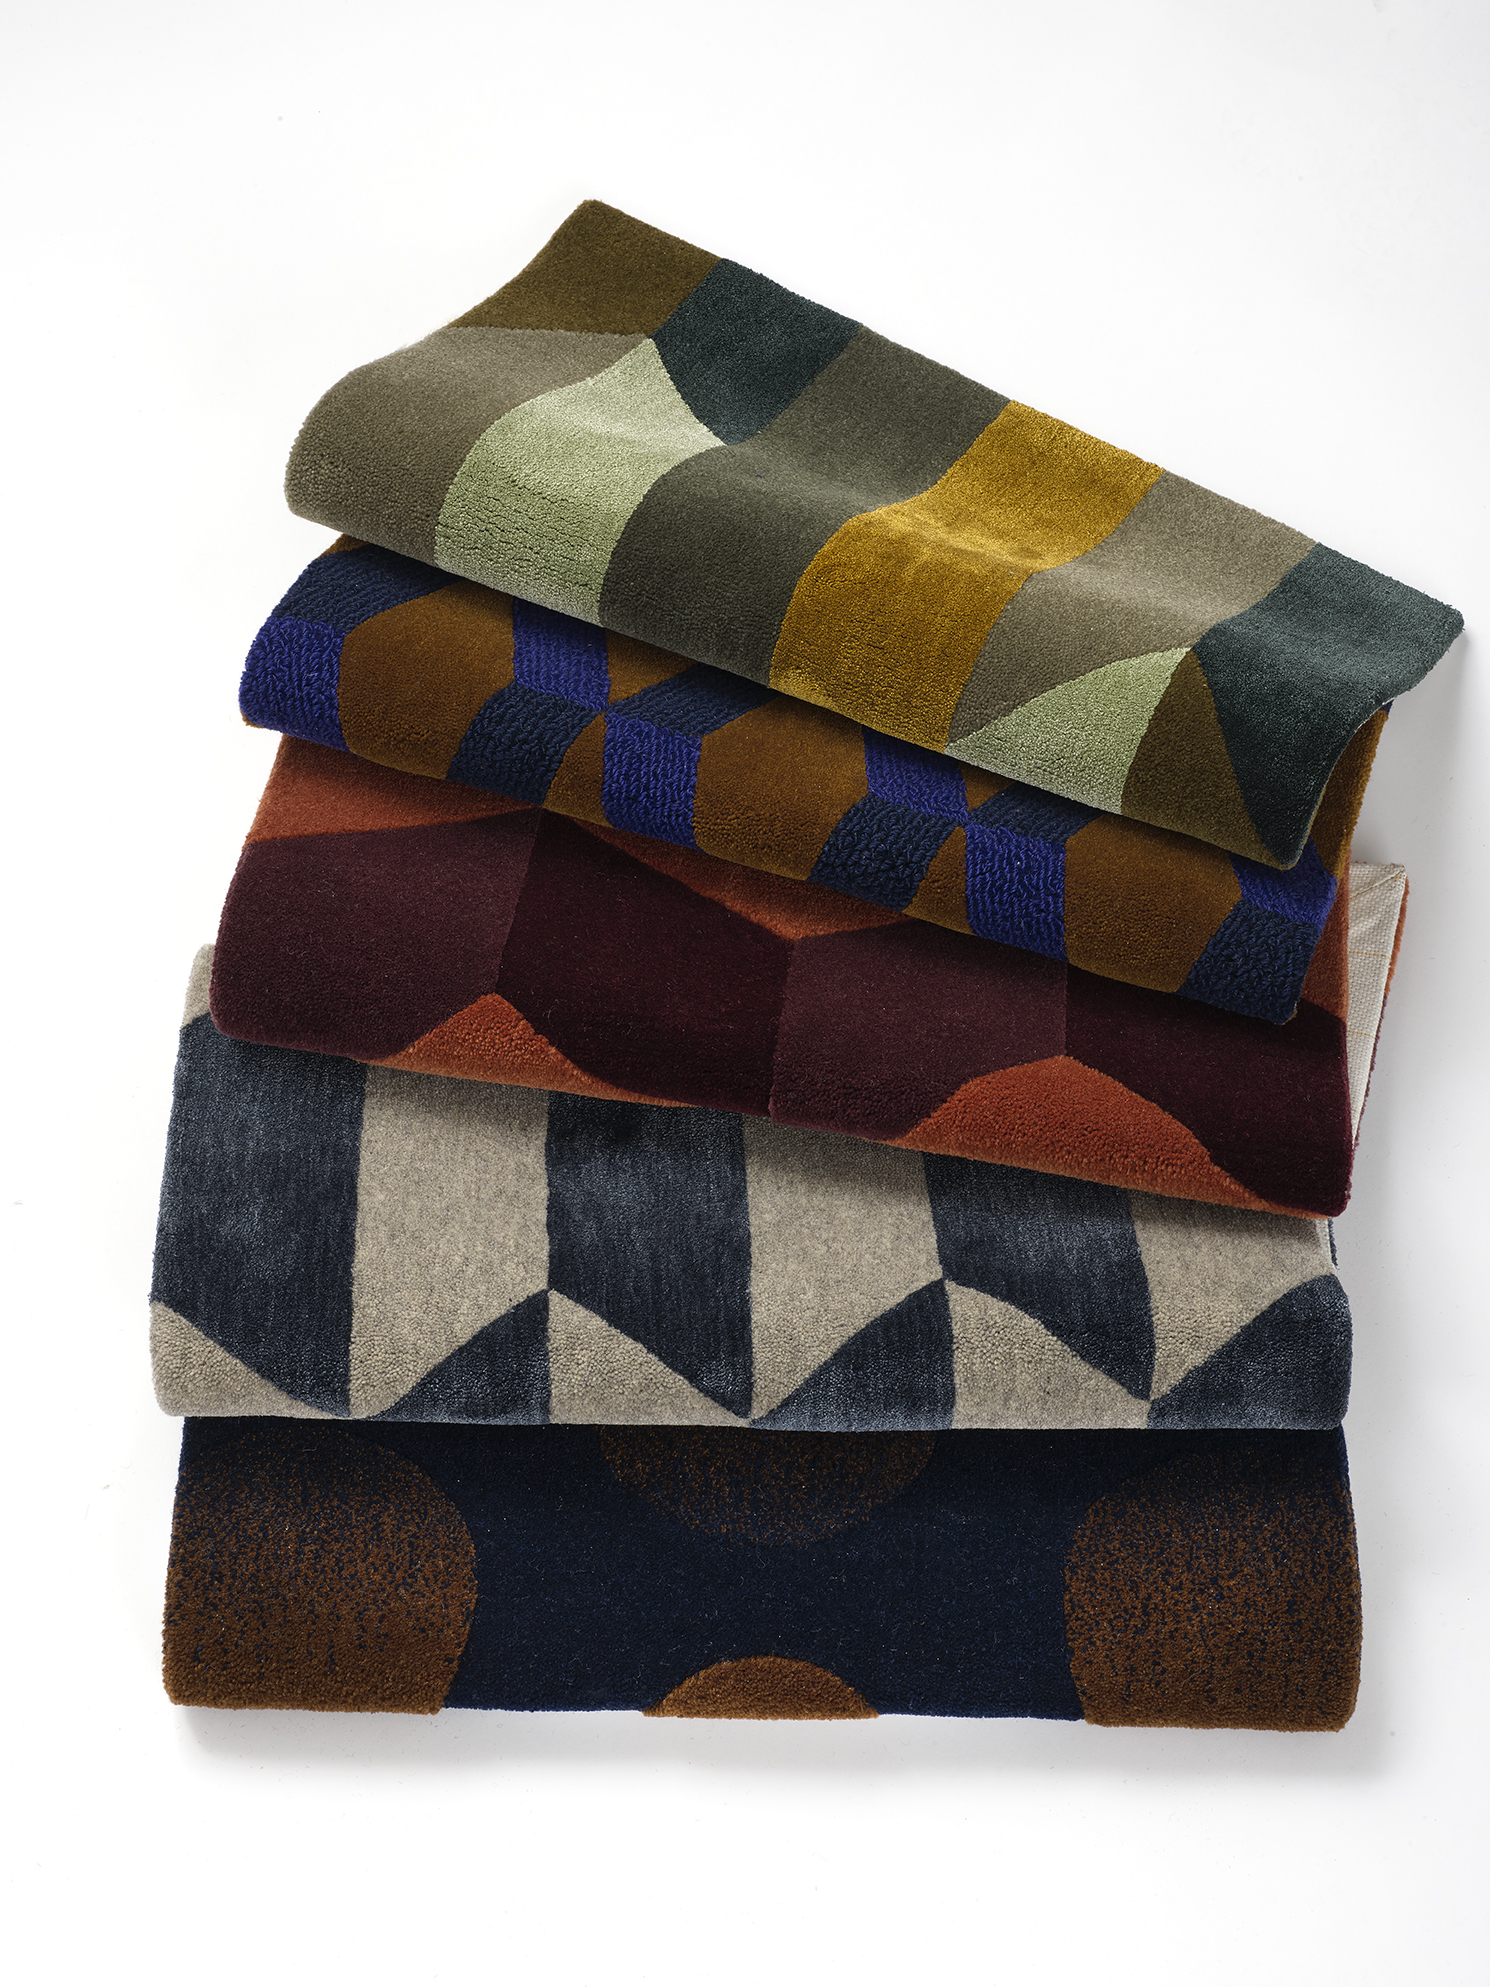 A stack of hand-tufted, silk wool rugs in jewel tones with different geometric patterns.